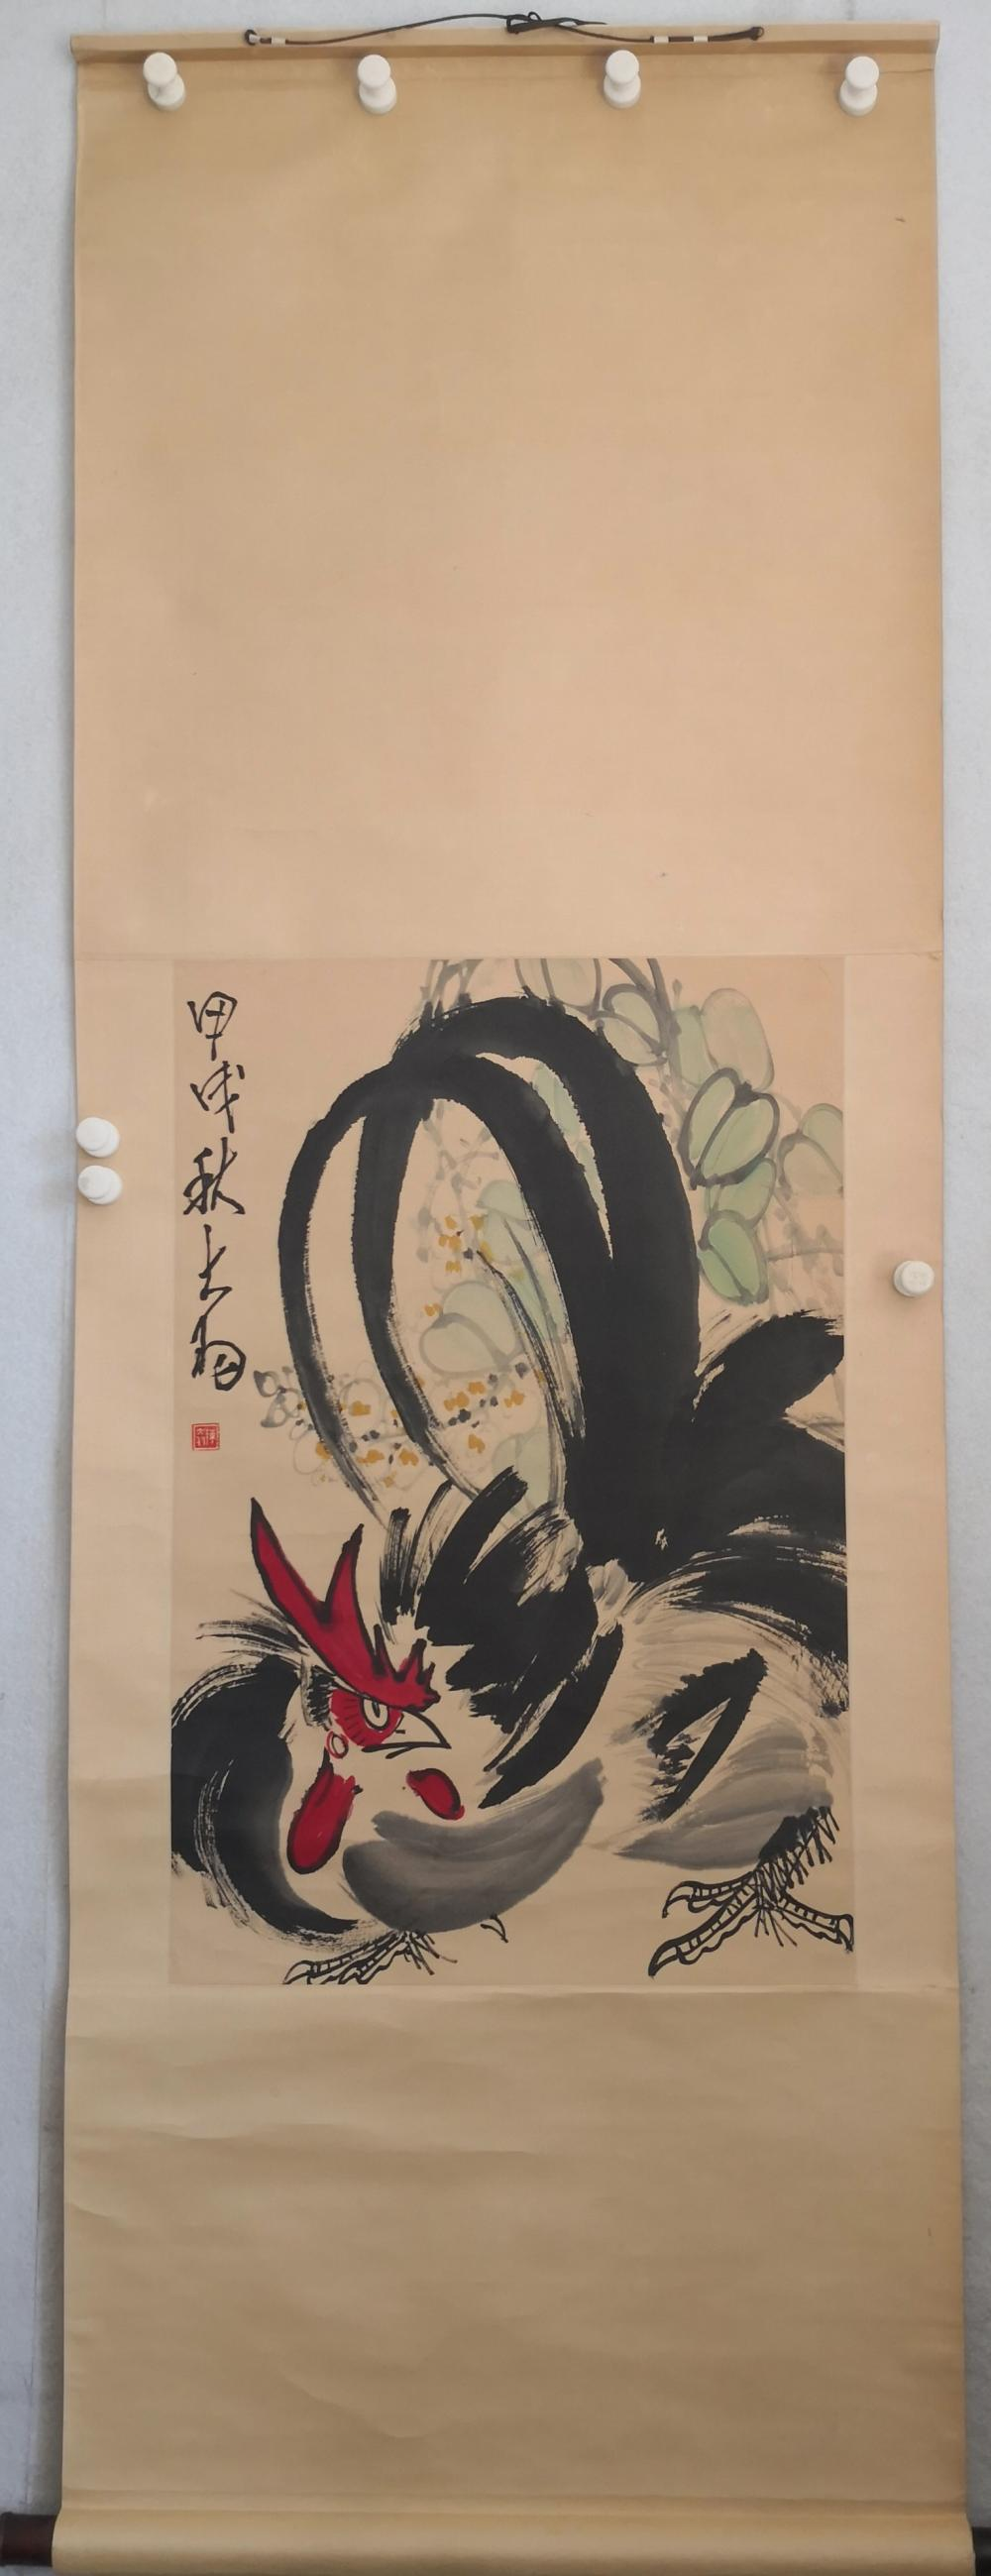 A CHINESE PAINTING BY CHEN DAYU